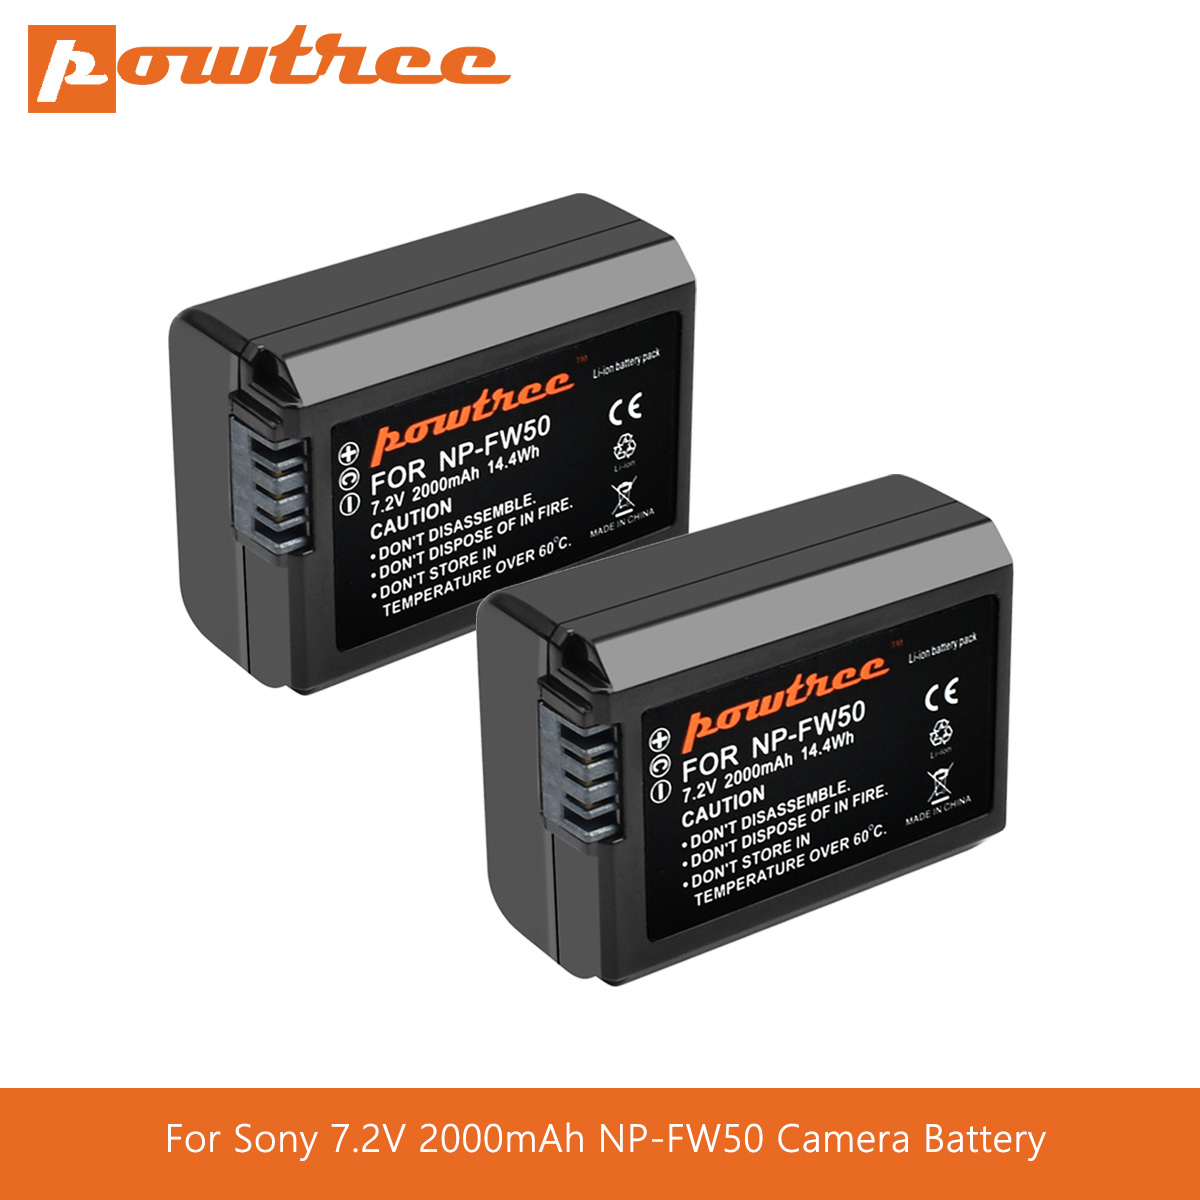 Powtree For <font><b>Sony</b></font> 7.2V 2000mAh NP-FW50 NPFW50 NP FW50 Camera Battery For <font><b>Alpha</b></font> <font><b>6500</b></font> 6300 6000 5000 3000 a7R a7S a7S II a7II L70 image